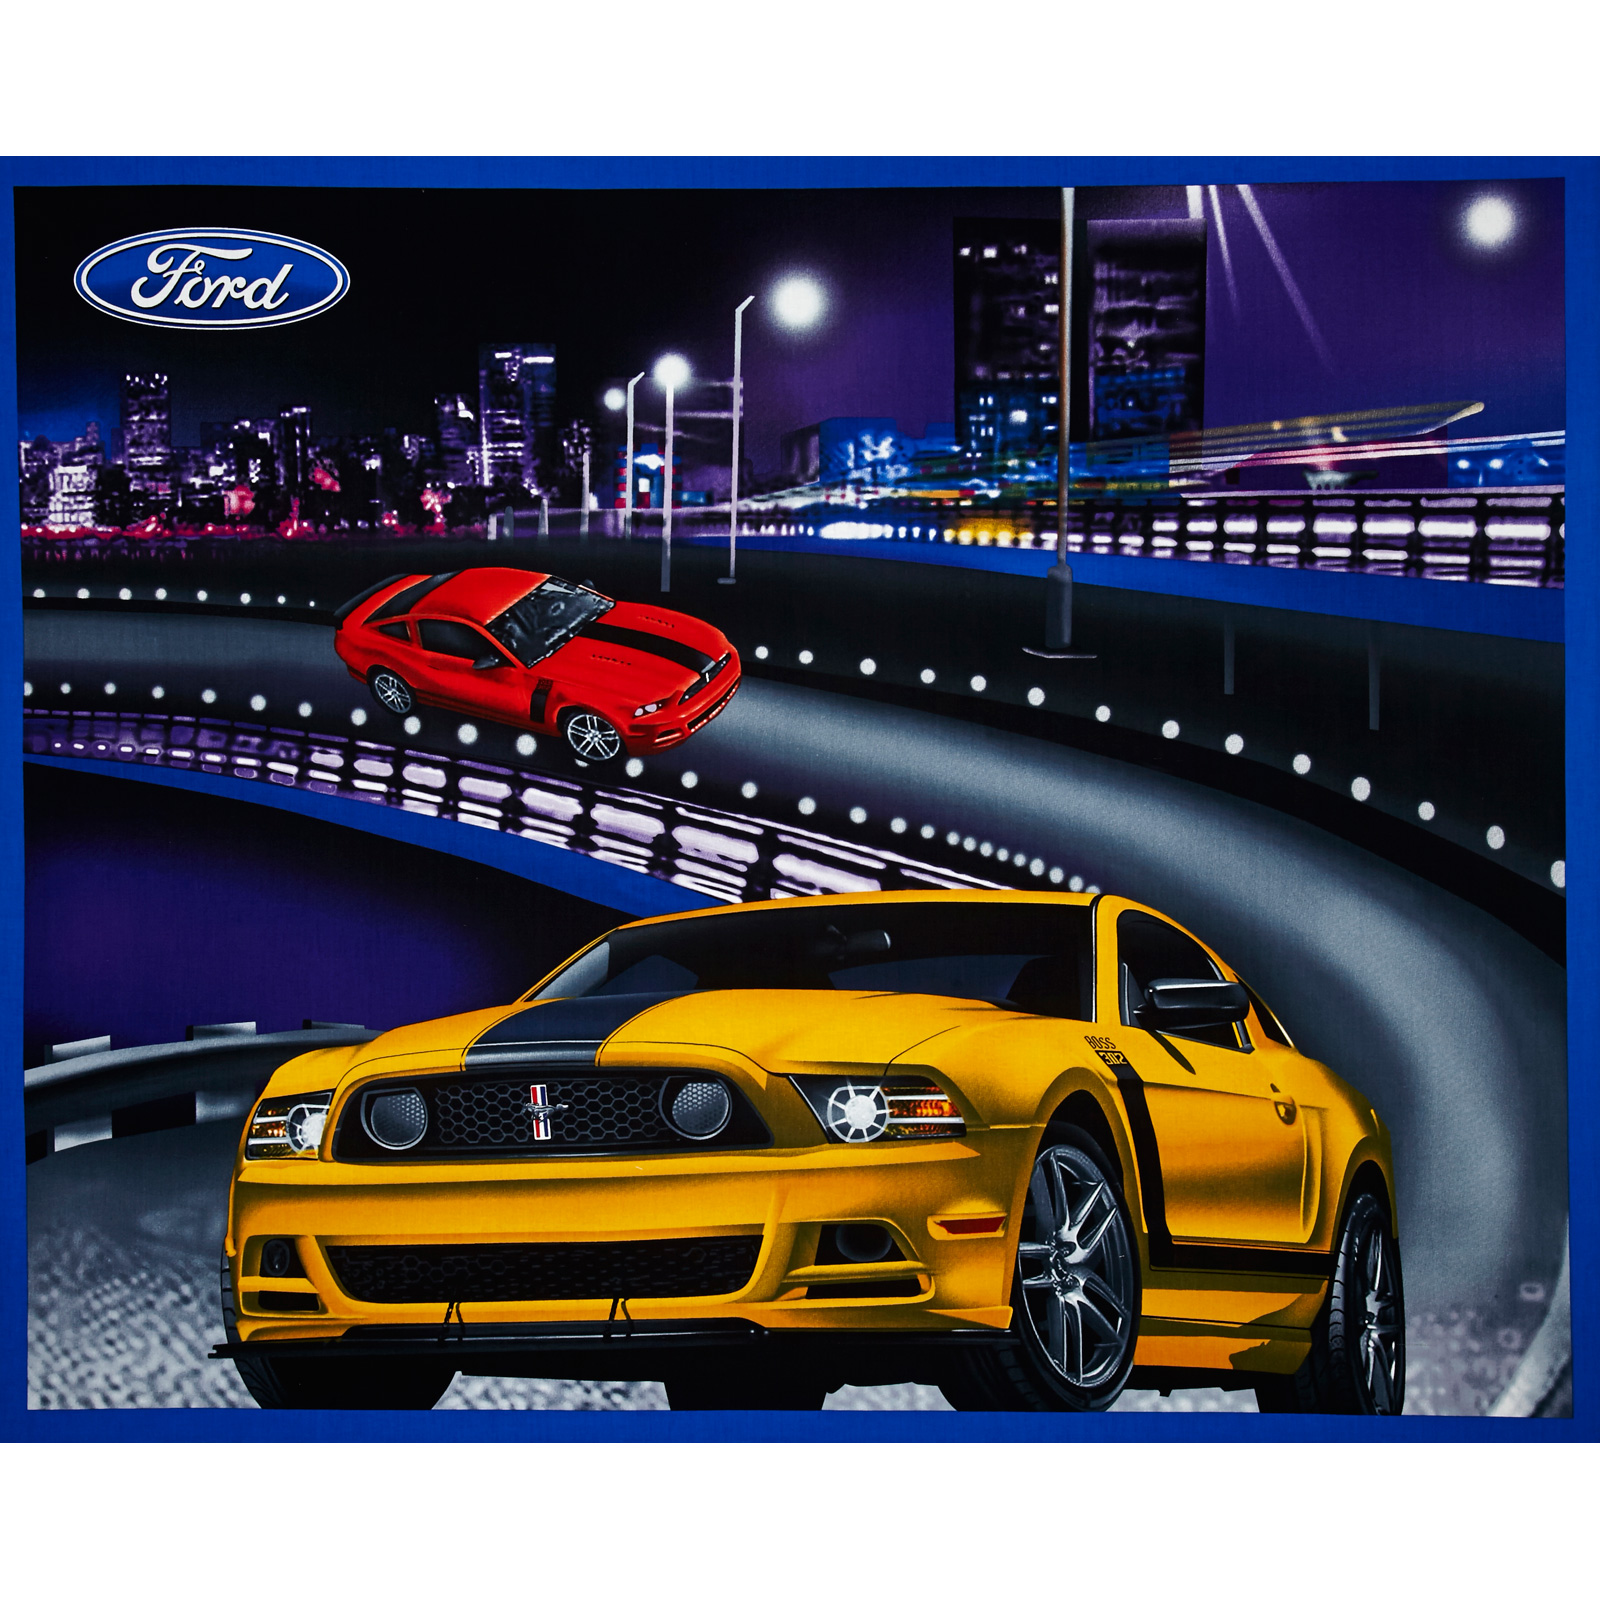 Ford Mustang Collection Panel Black Fabric